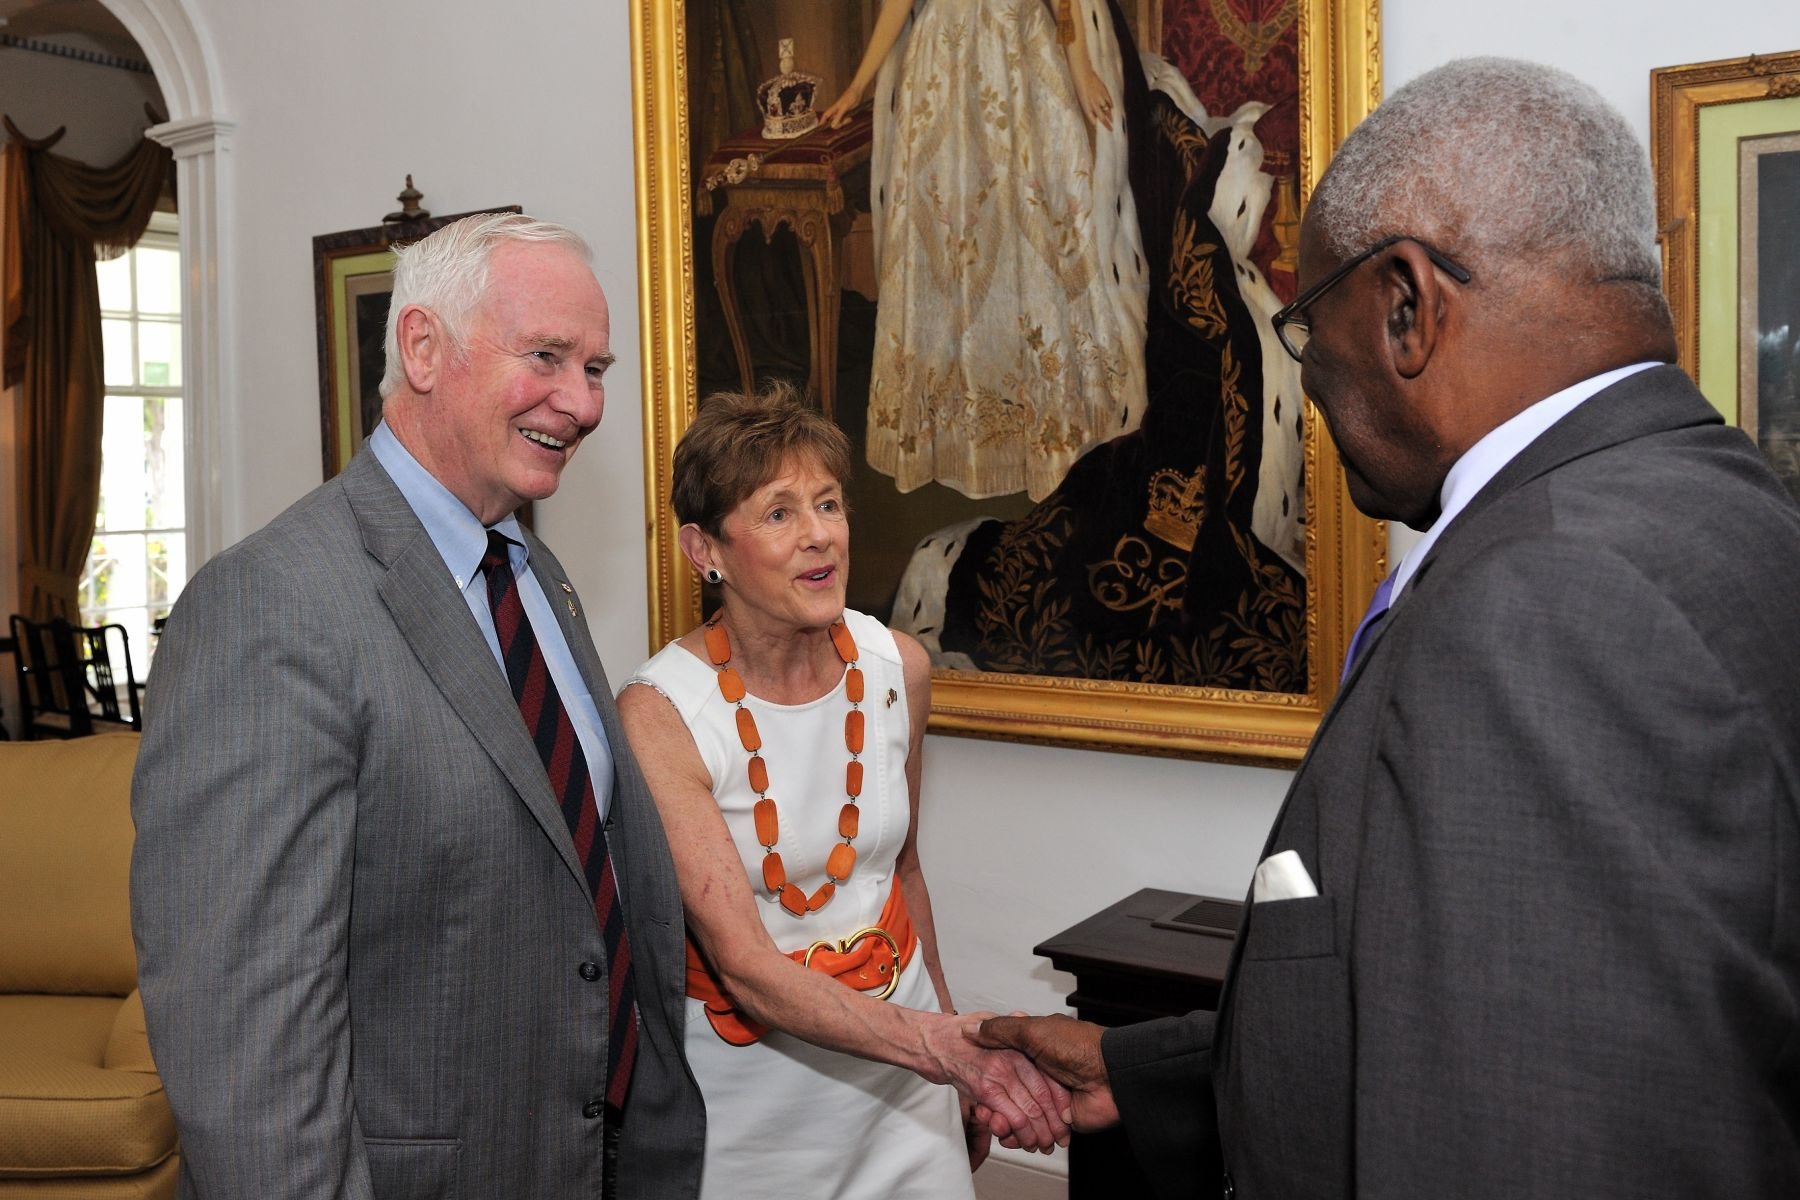 The courtesy call took place on the second day of Their Excellencies' working visit to Barbados.